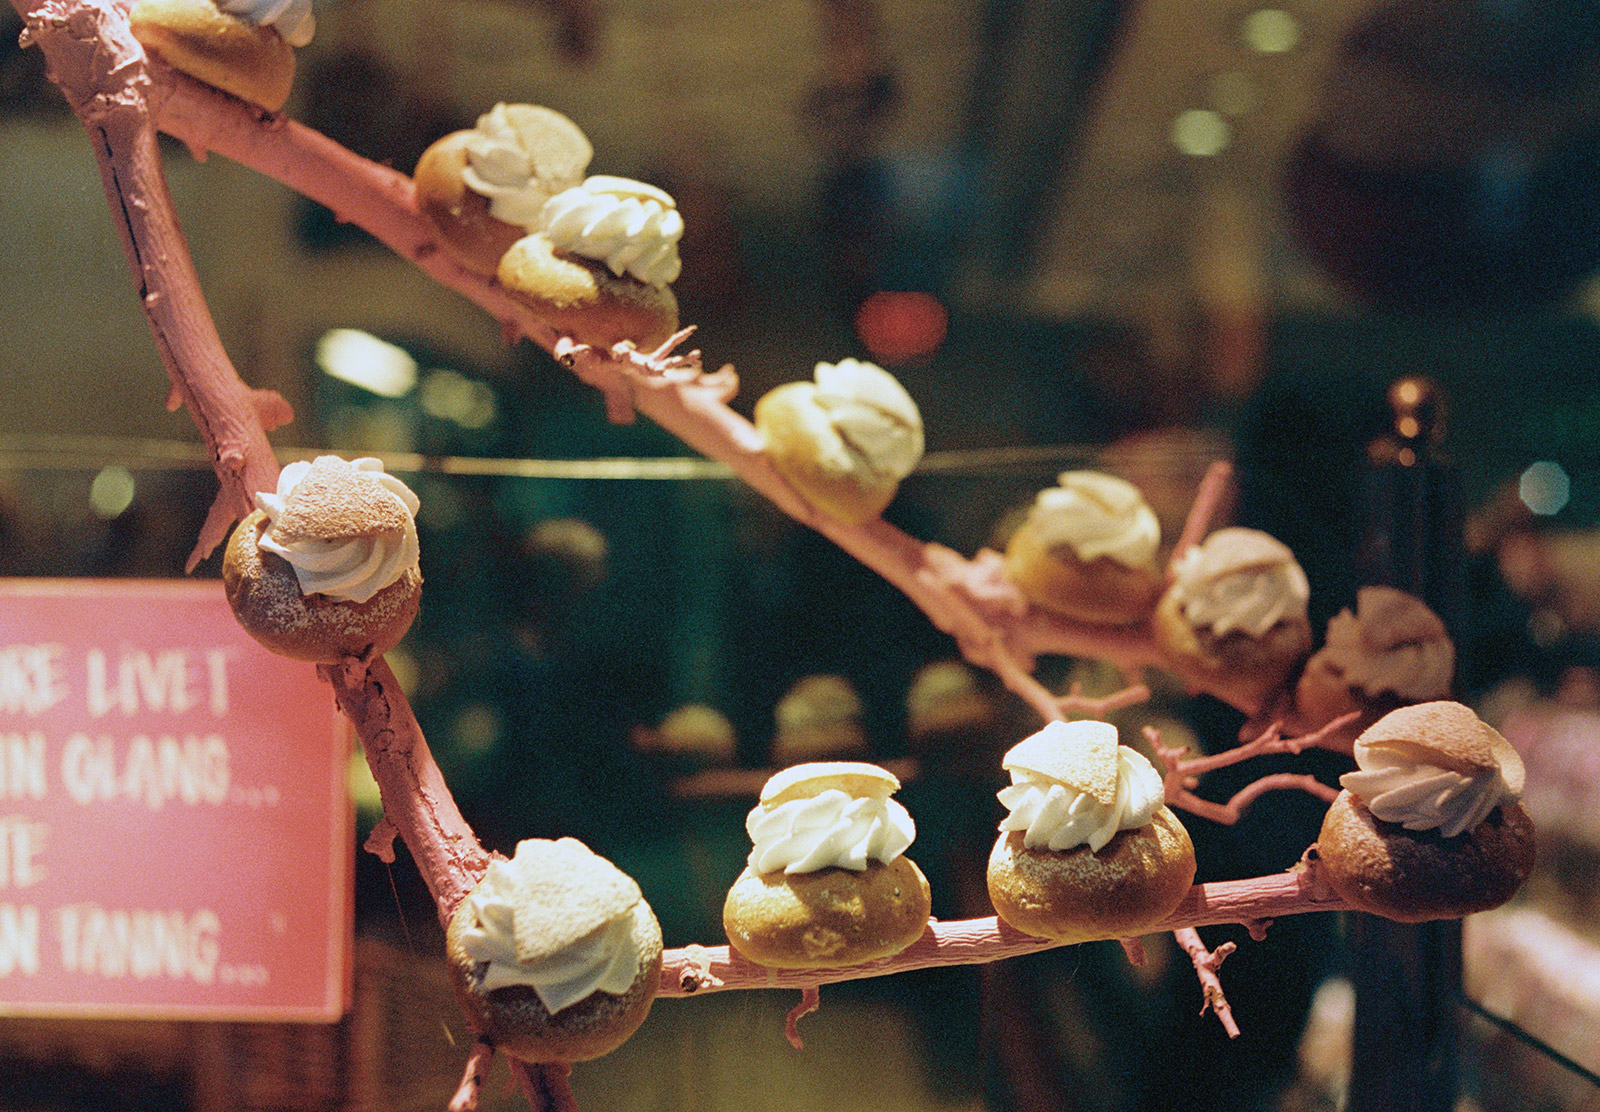 Semla buns on branches